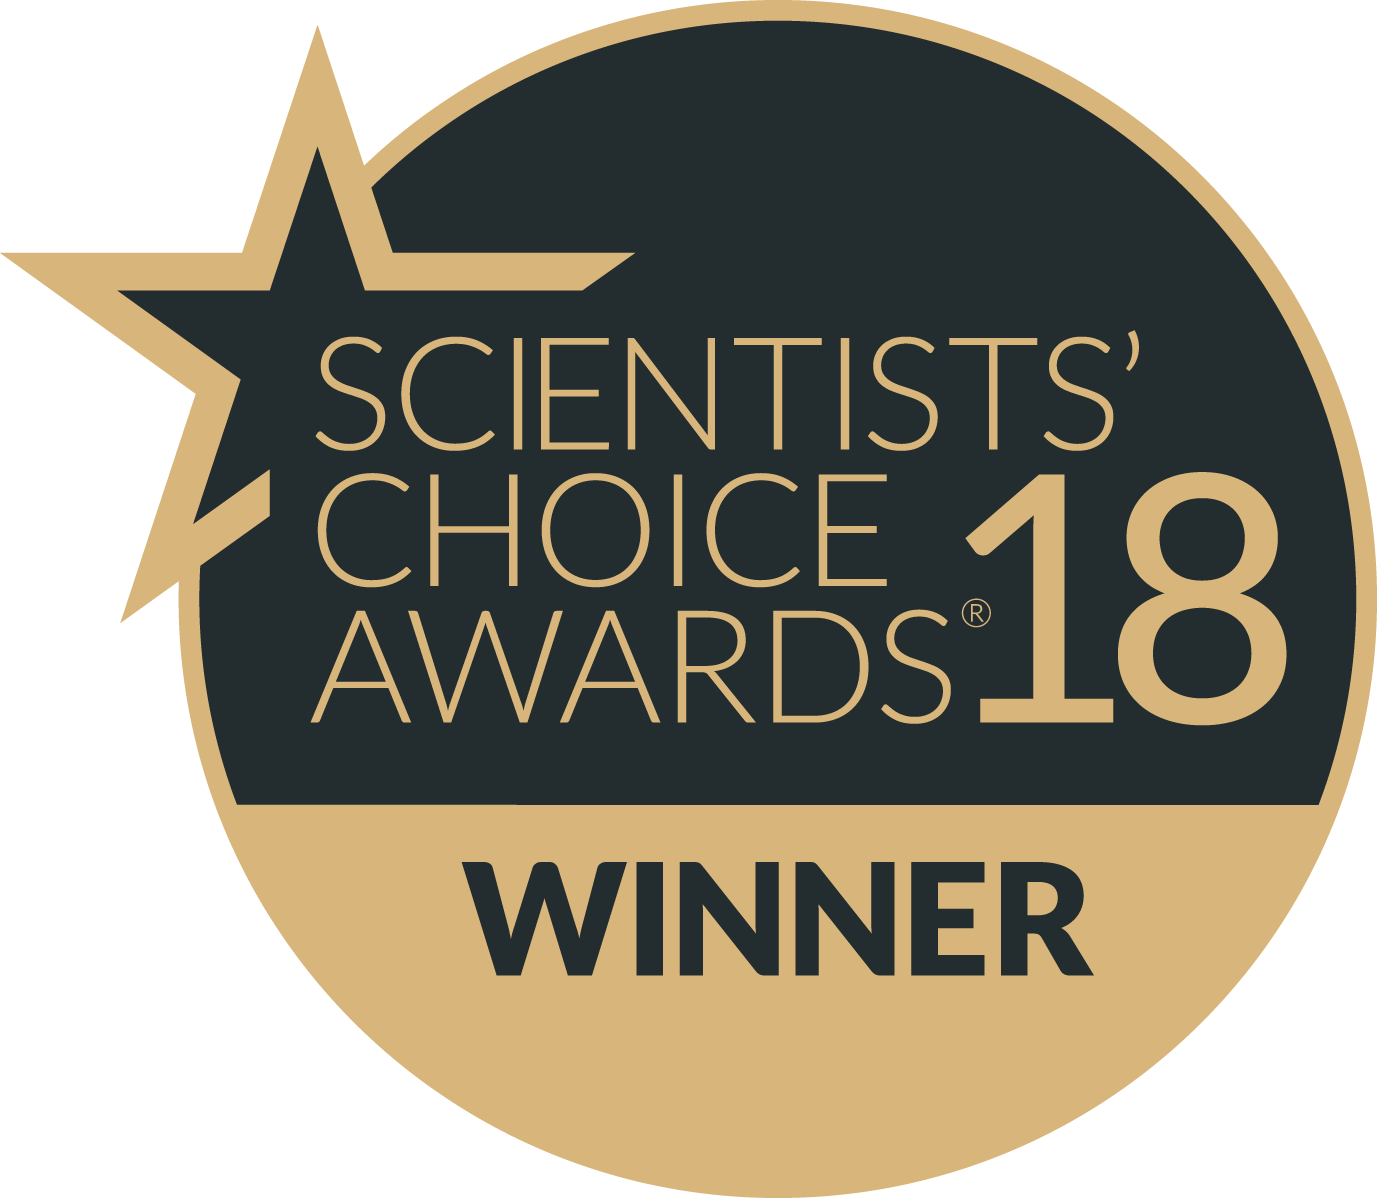 Scientists' Choice Awards_WinnerBadge_2018-png